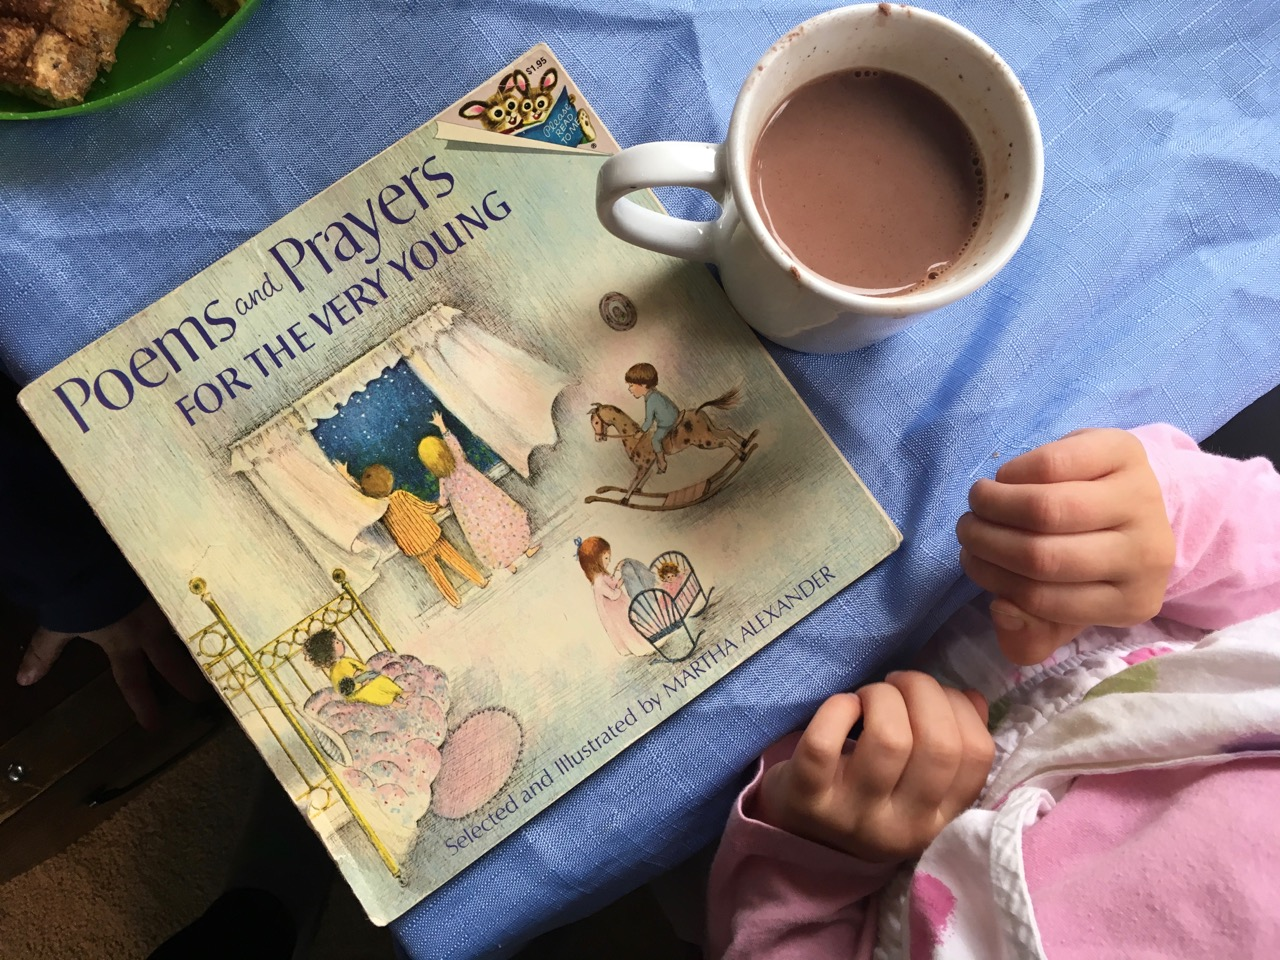 My favorite poetry book for the littlest among us!